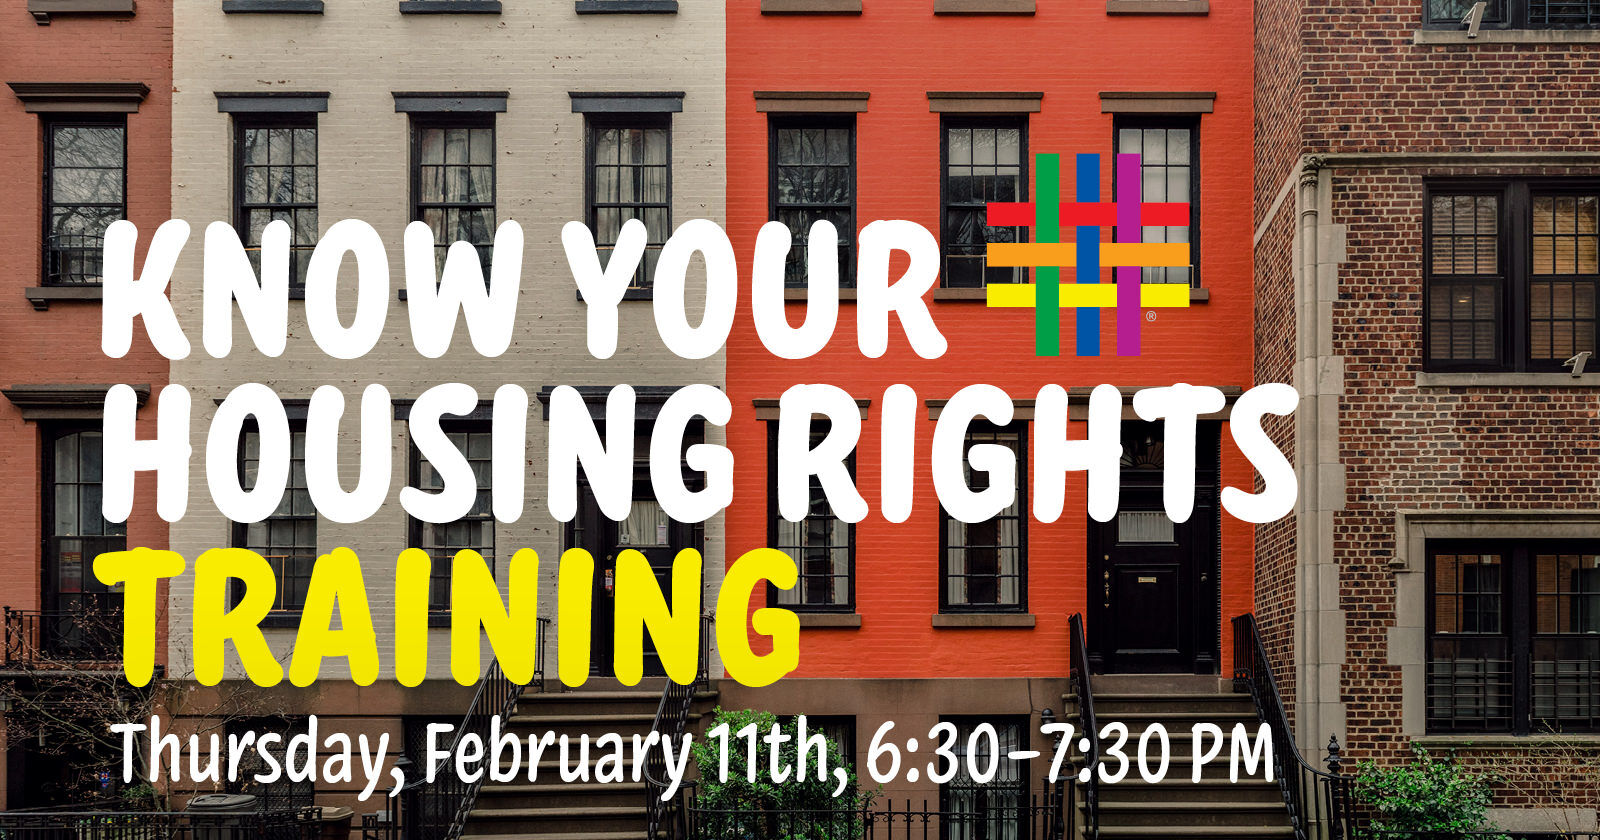 Know Your Housing Rights Training at Brooklyn Community Pride Center